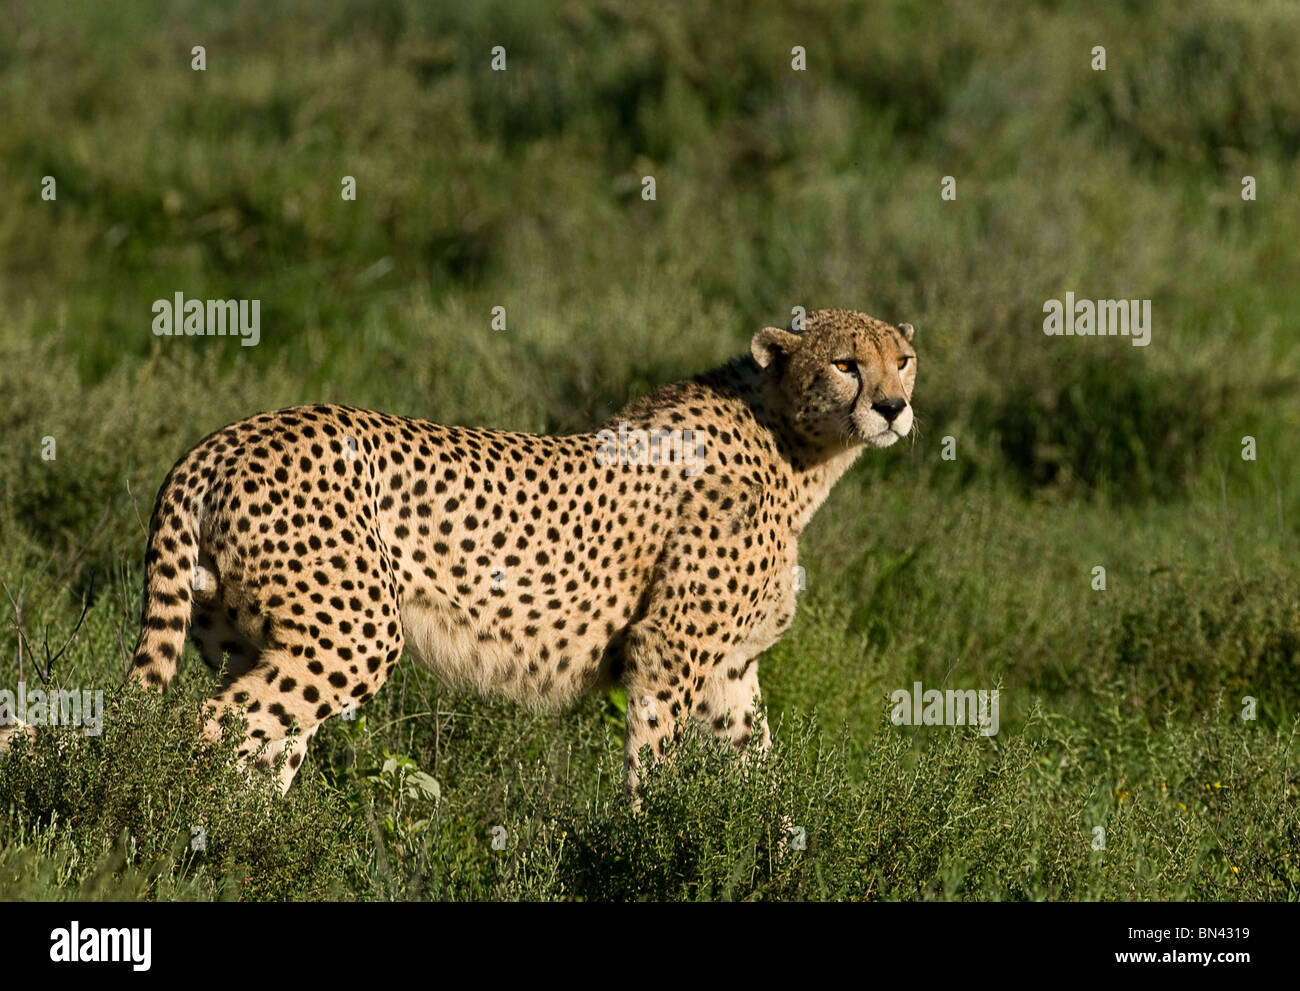 Cheetah standing alert in the grass in the wild, in the Serengeti in Tanzania - Stock Image